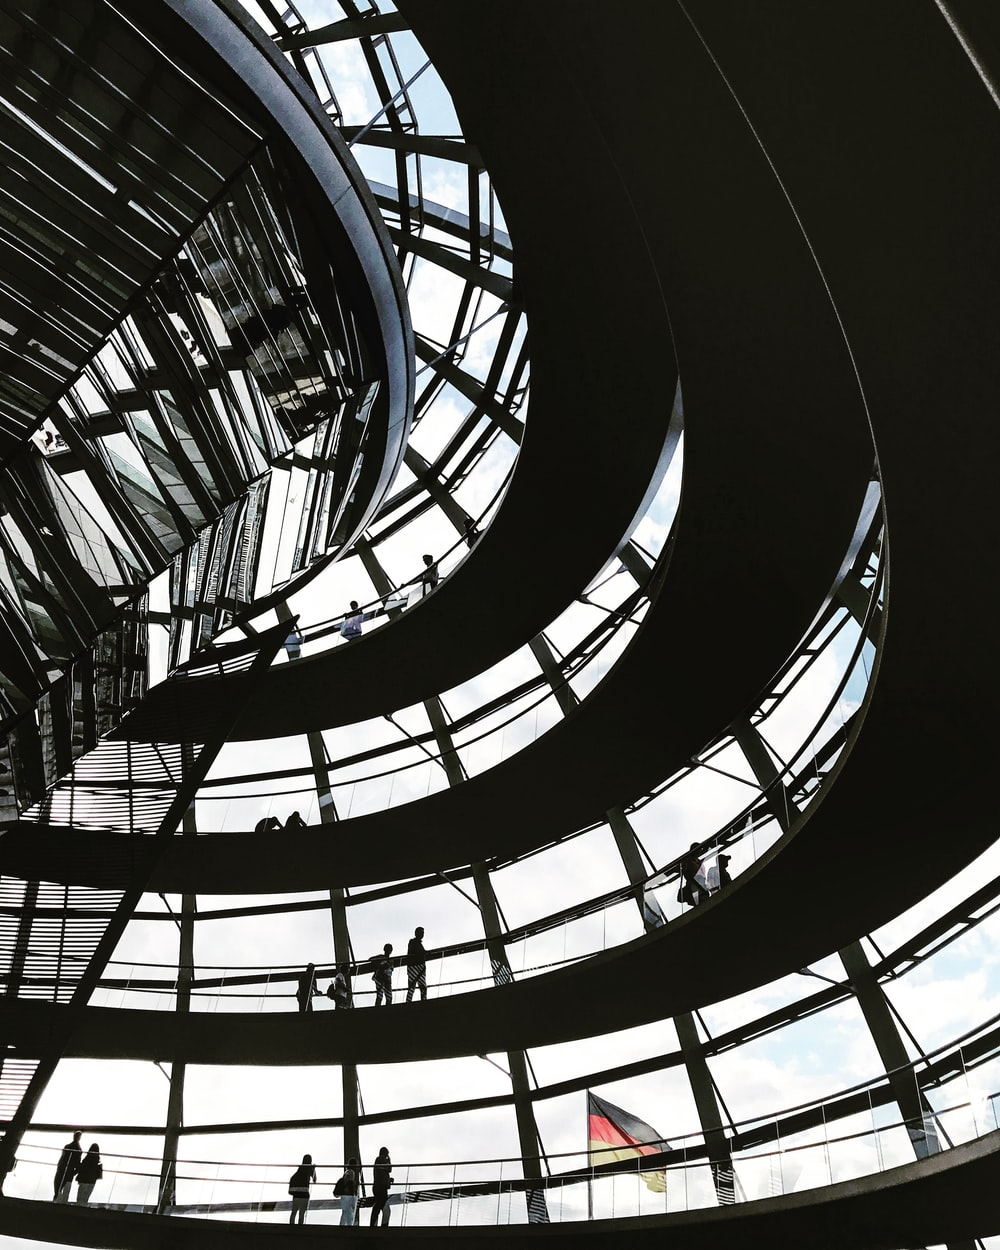 black metal spiral staircase in building